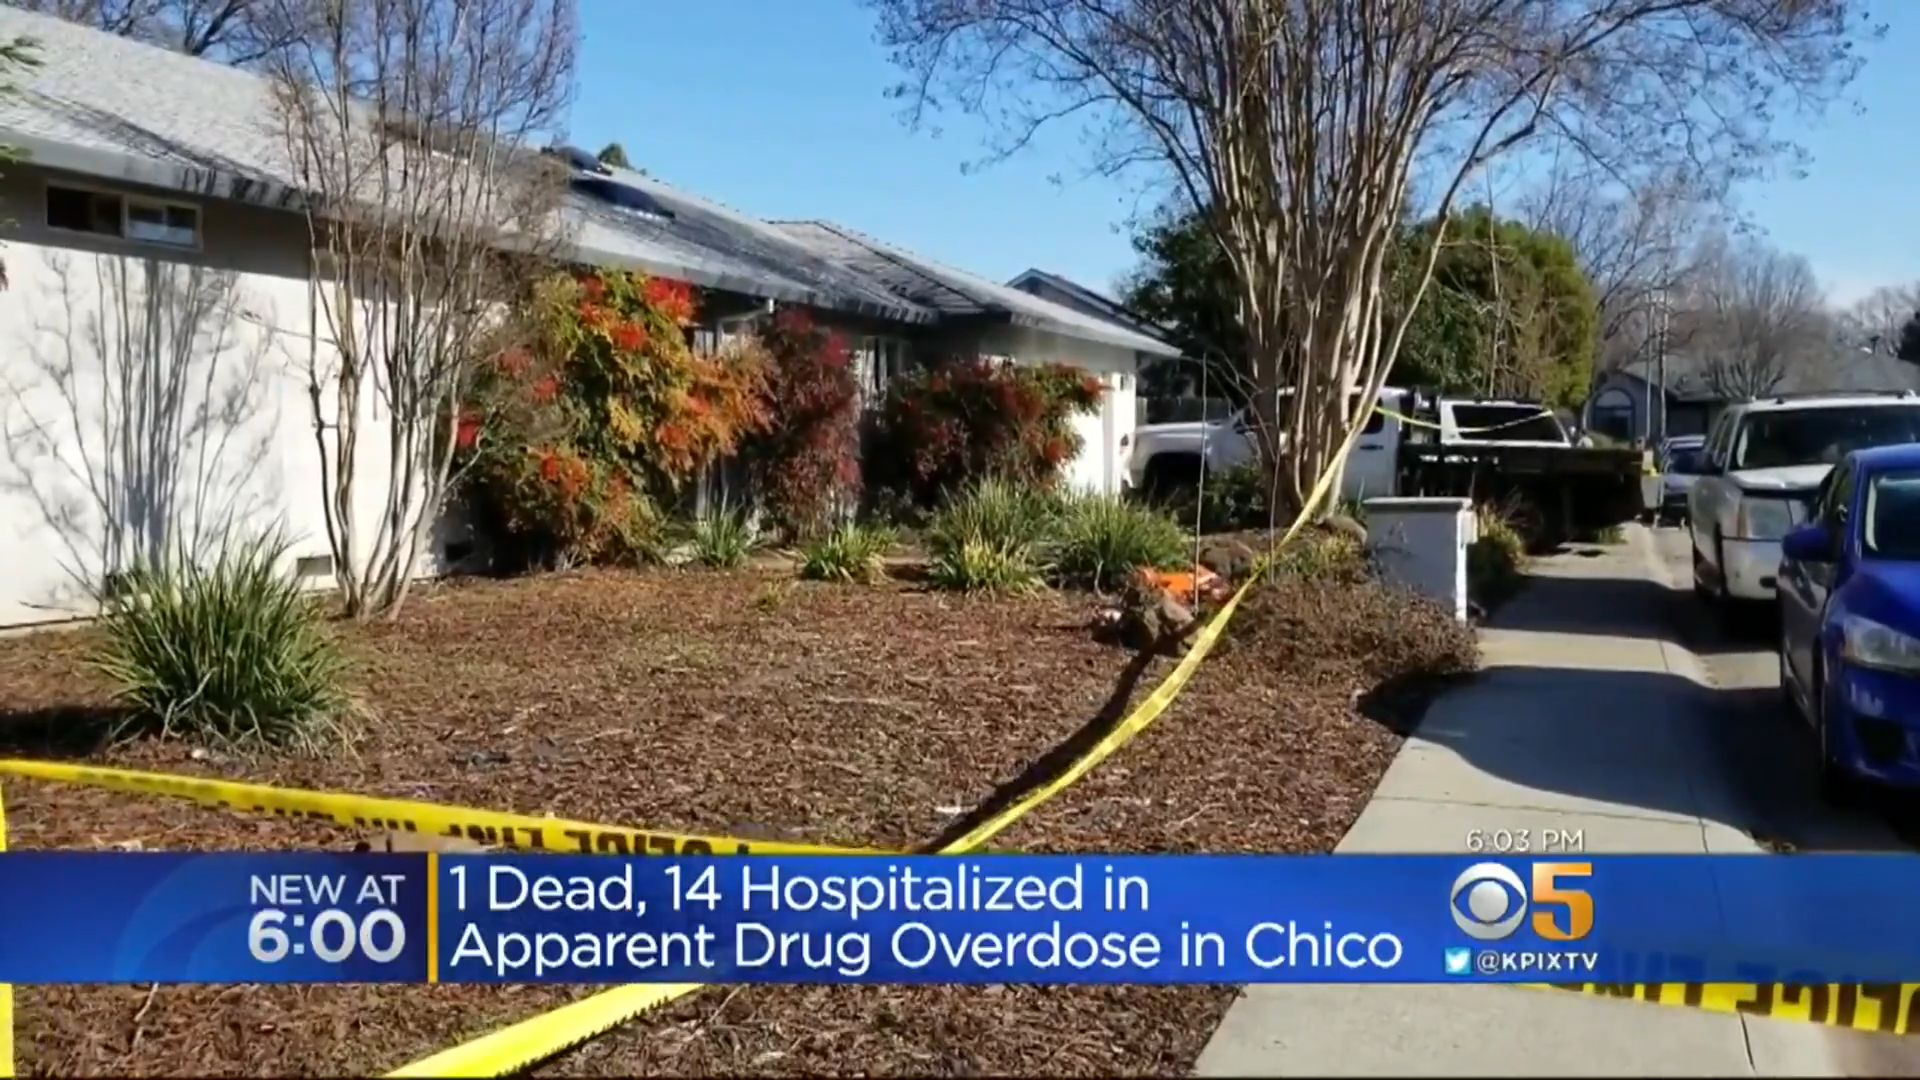 Authorities in Chico, California, said drug overdoses at this home are believed to have killed one person and hospitalized 12